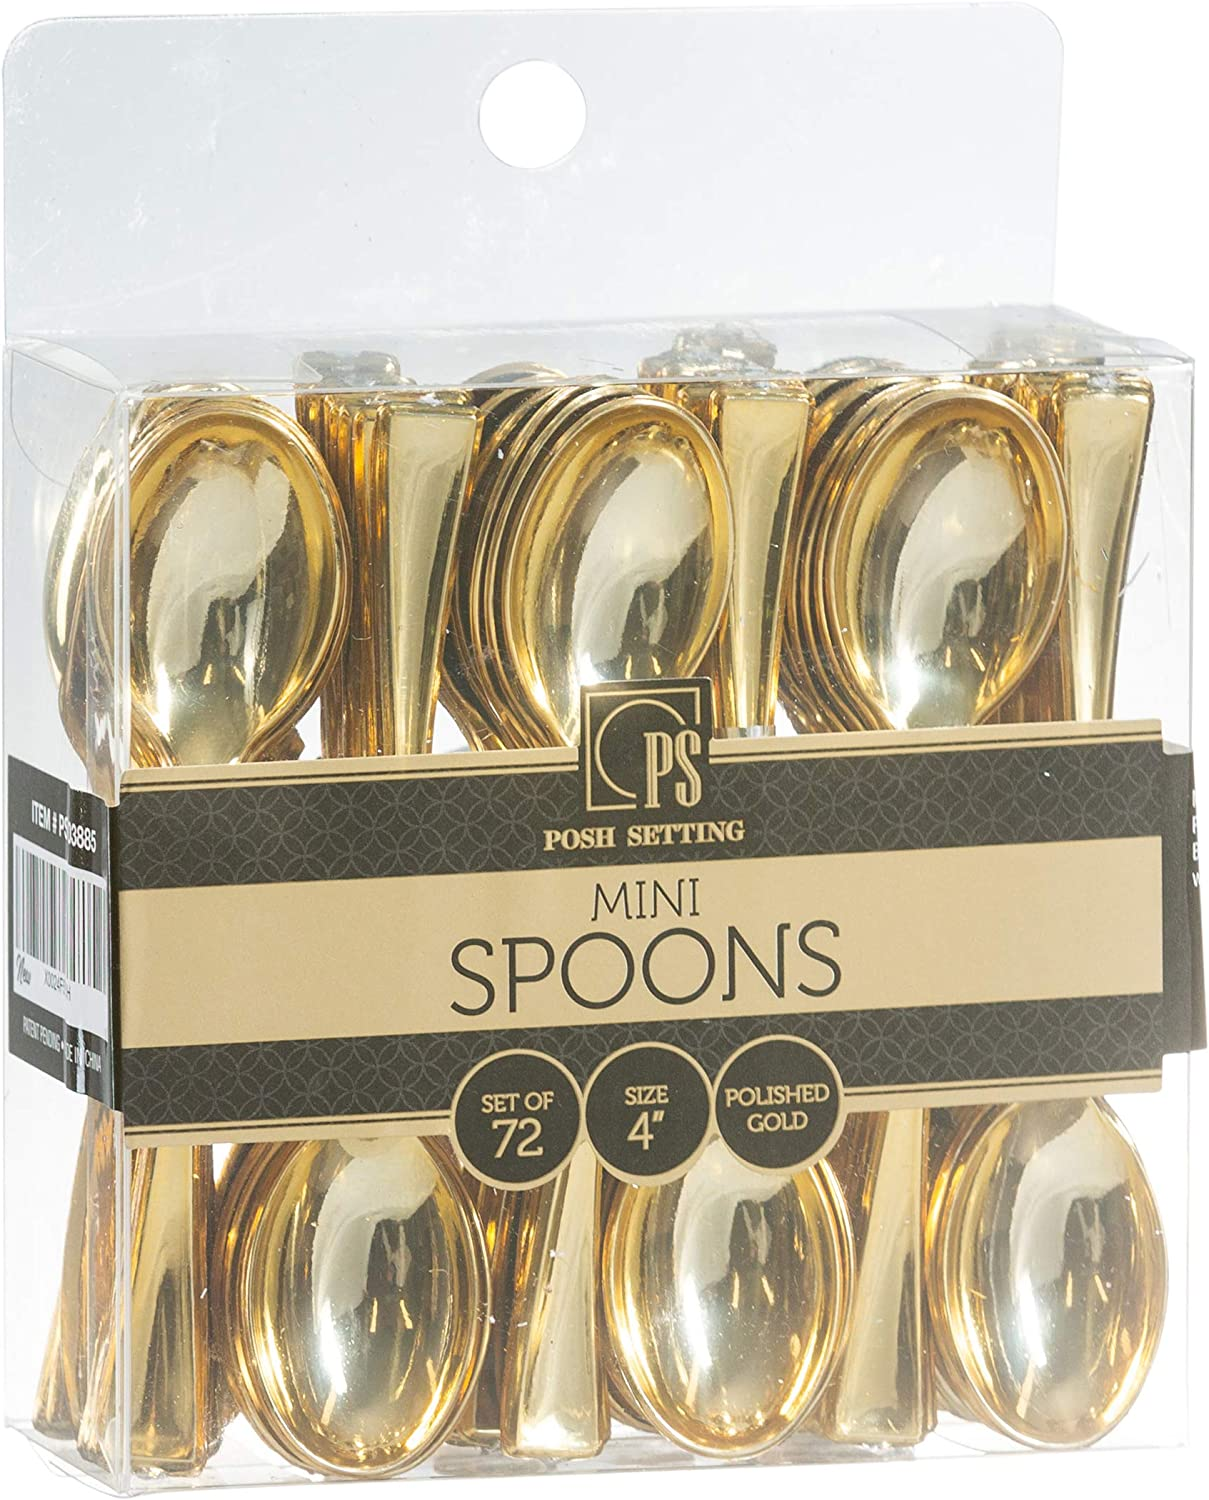 Disposable Plastic Gold Mini Spoons Courier shipping free shipping Tasting 67% OFF of fixed price